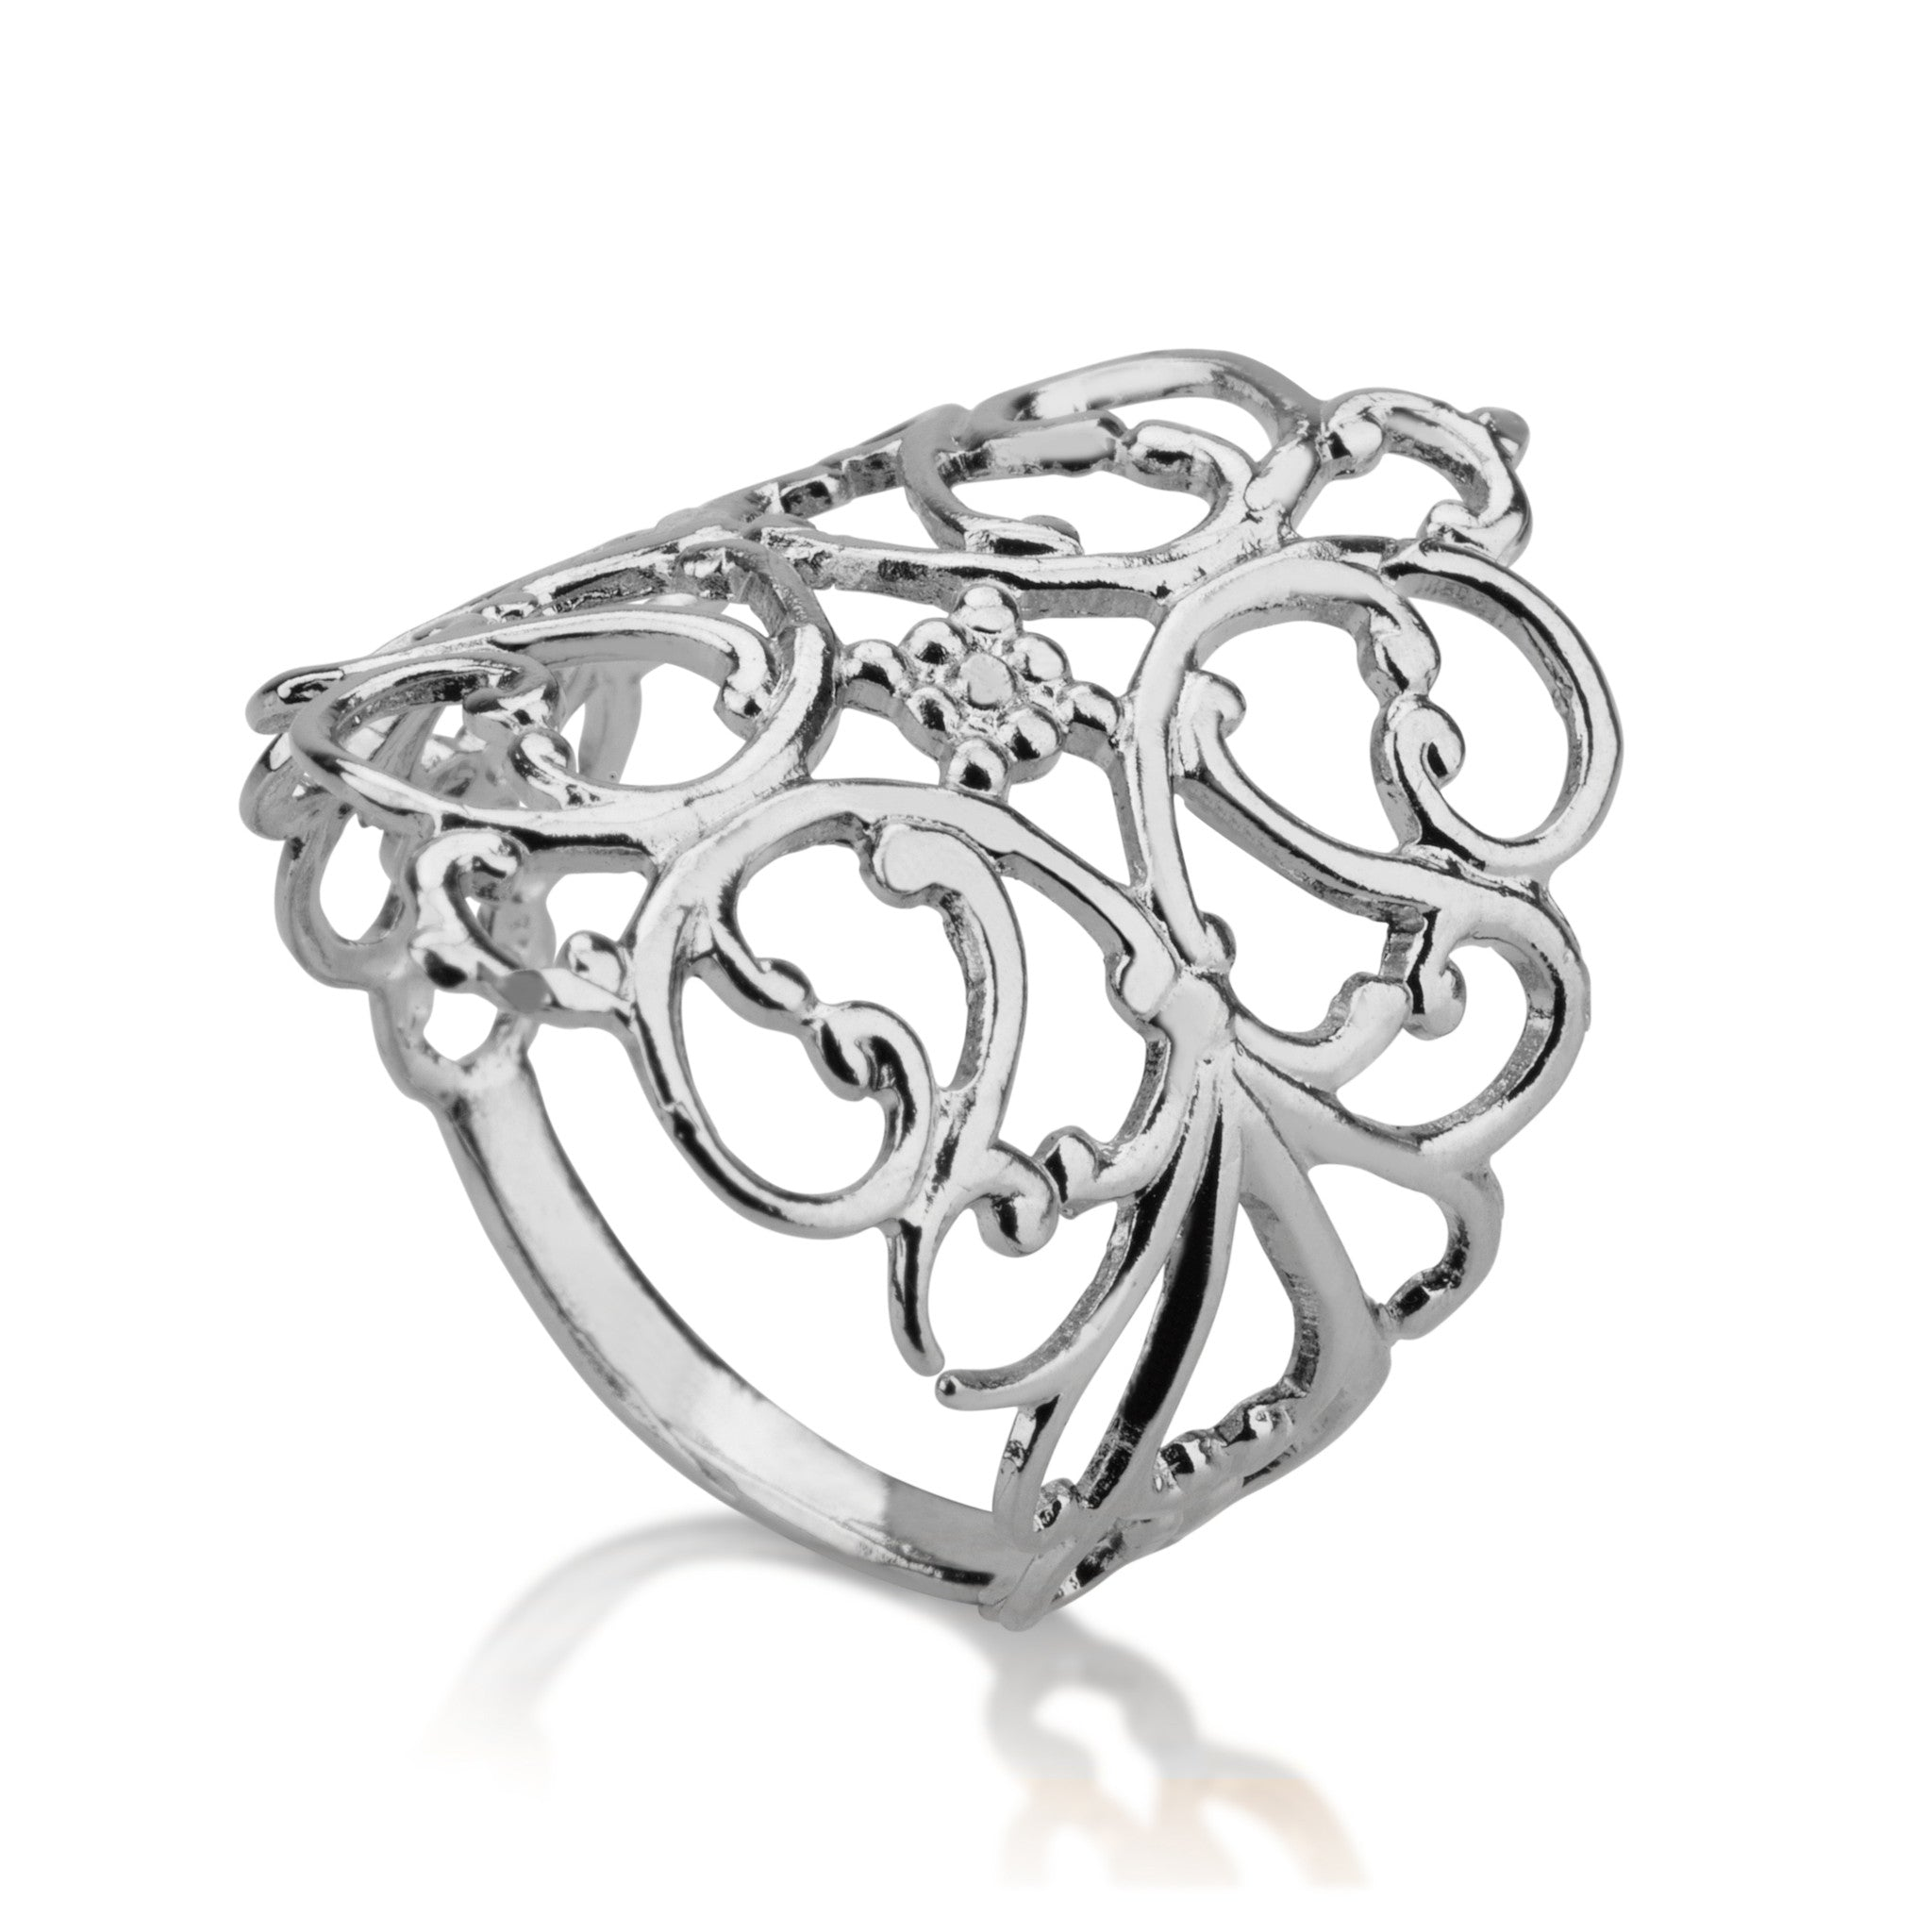 Rings - Filligrin Diamond Ring